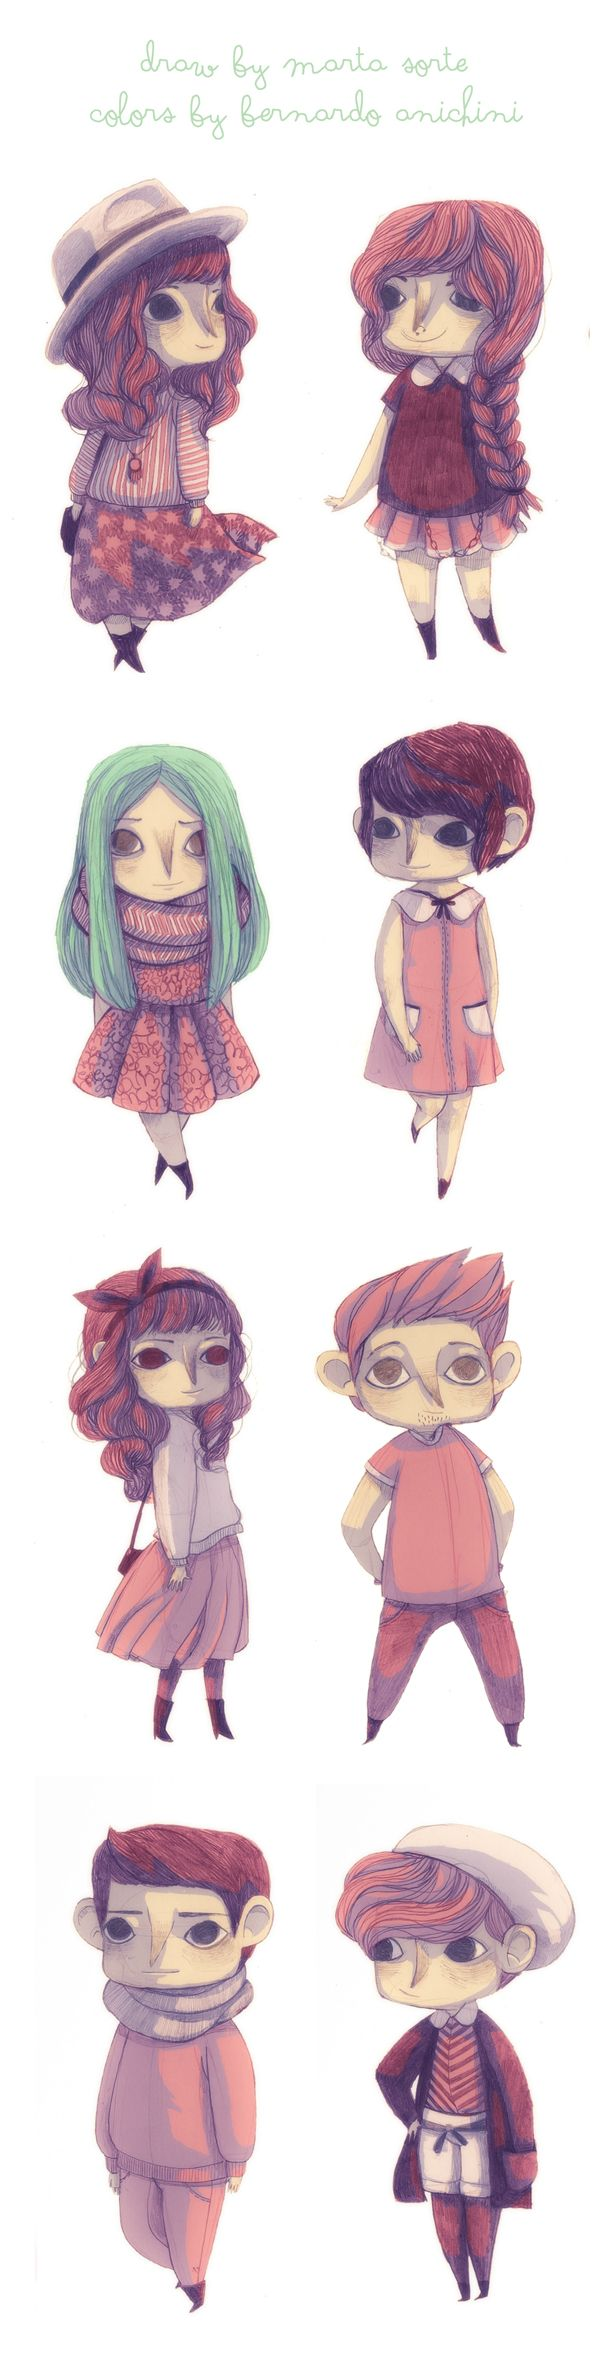 daily characters on Behance    ★    CHARACTER DESIGN REFERENCES™ (https://www.facebook.com/CharacterDesignReferences & https://www.pinterest.com/characterdesigh) • Love Character Design? Join the #CDChallenge (link→ https://www.facebook.com/groups/CharacterDesignChallenge) Share your unique vision of a theme, promote your art in a community of over 50.000 artists!    ★